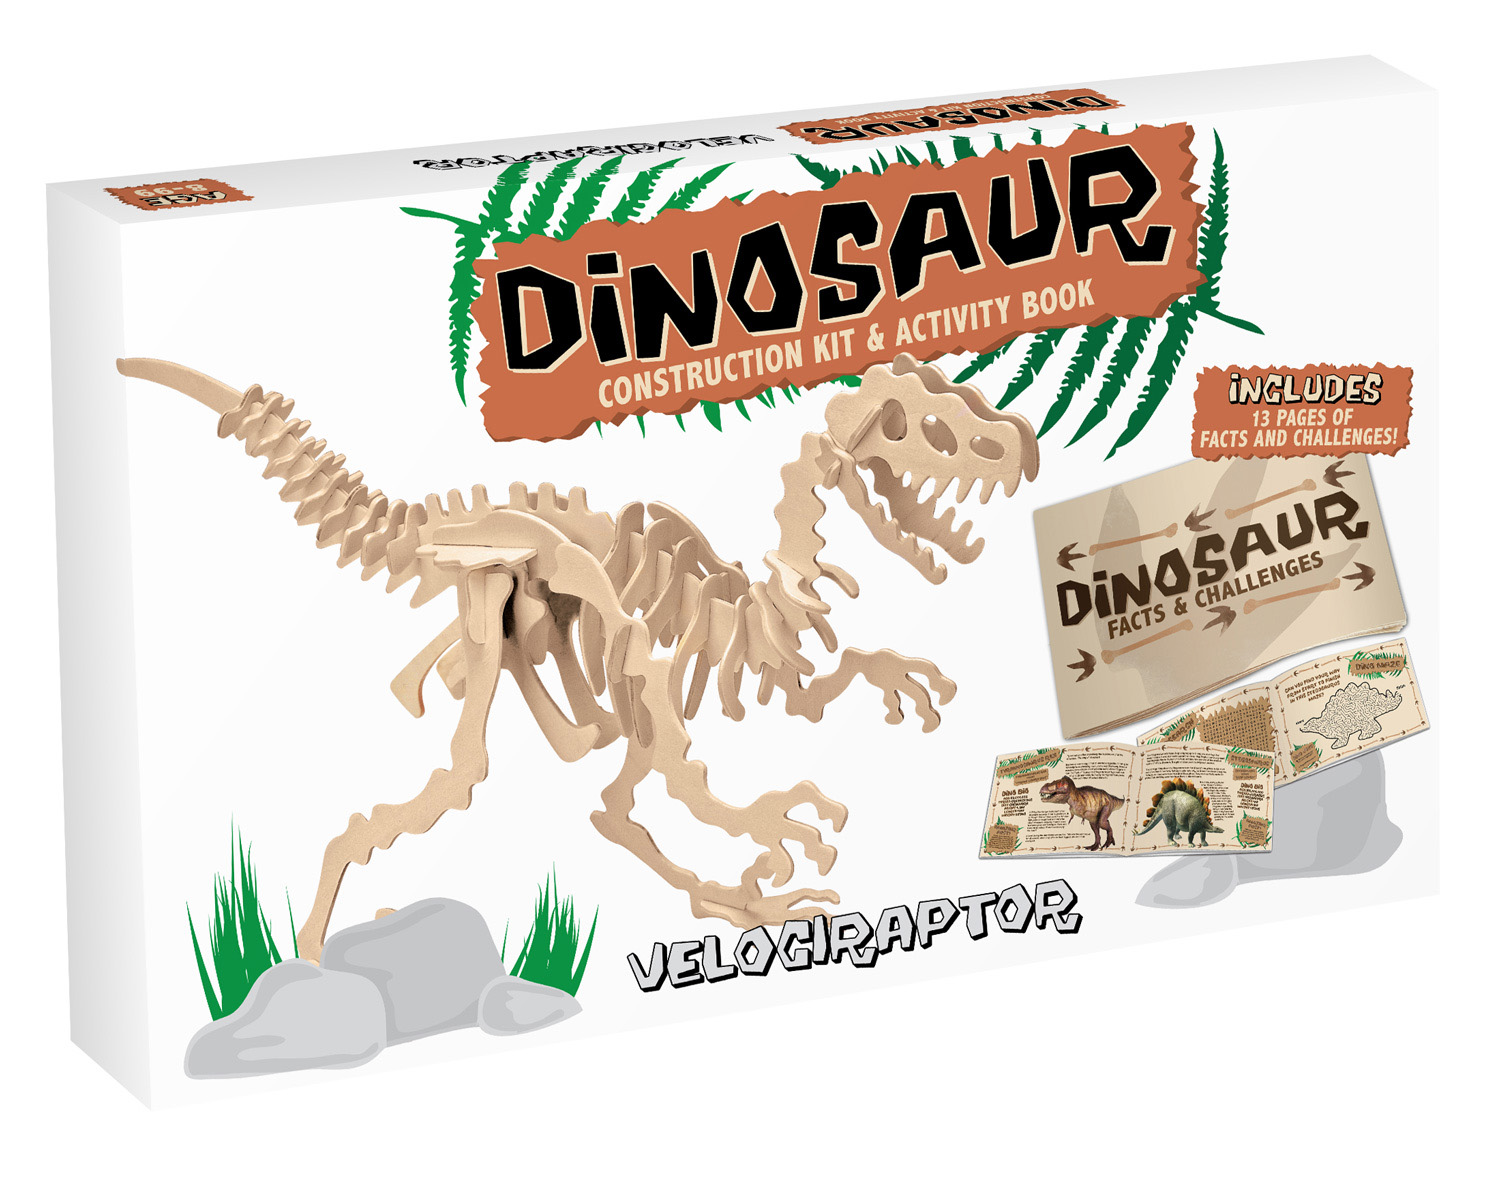 Dinosaur Construction Kit & Activity Book - Velociraptor